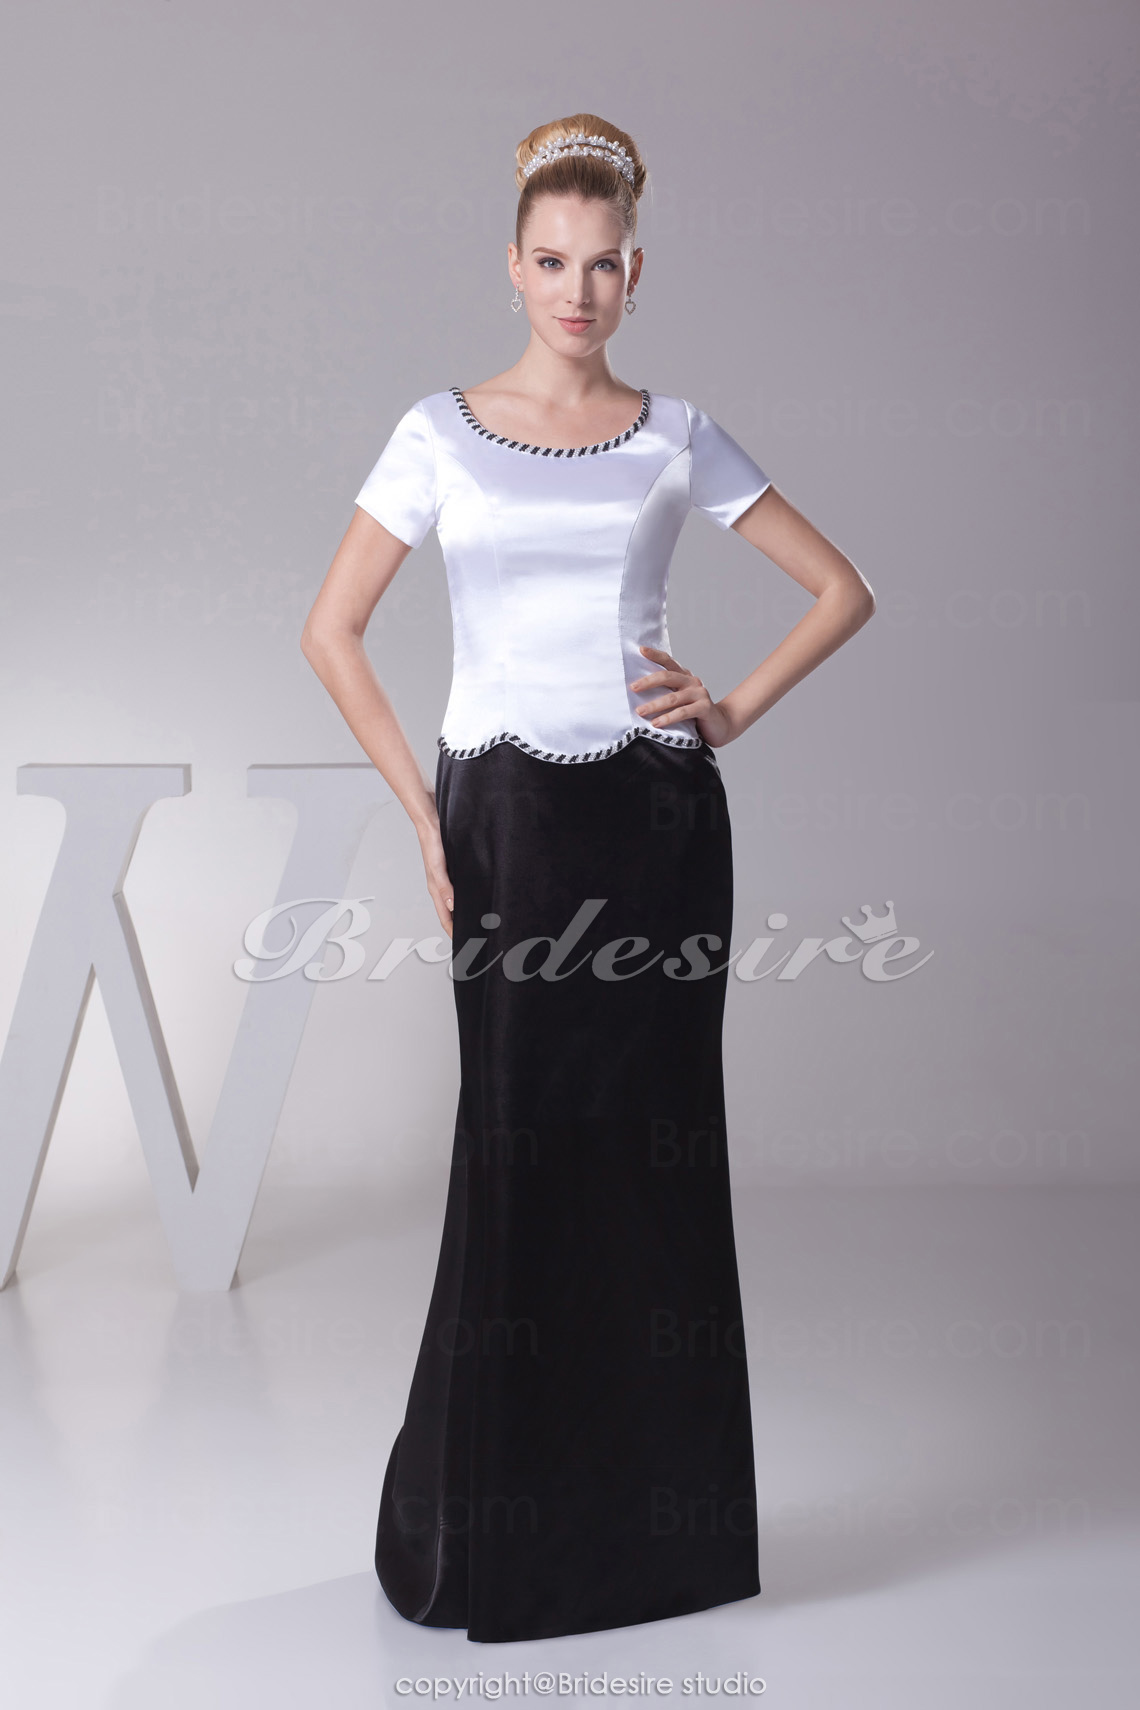 Sheath/Column Scoop Sweep/Brush Train Short Sleeve Stretch Satin Mother of the Bride Dress